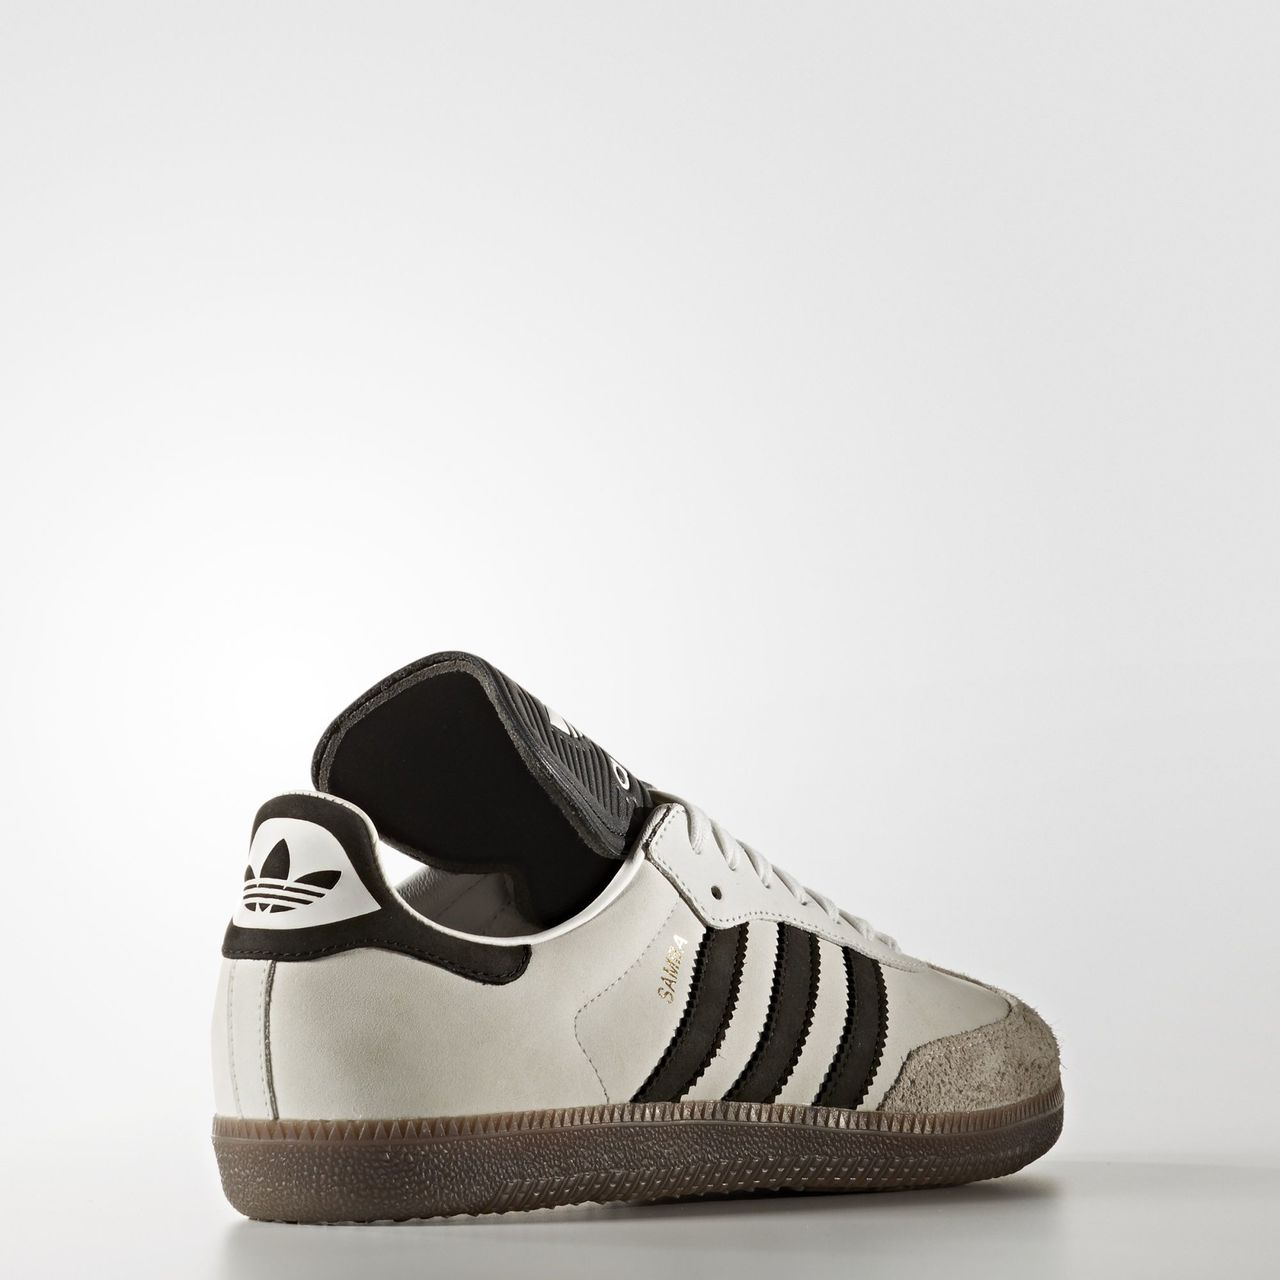 adidas samba made in germany shoes vintage white core black gum shoes football fashion. Black Bedroom Furniture Sets. Home Design Ideas